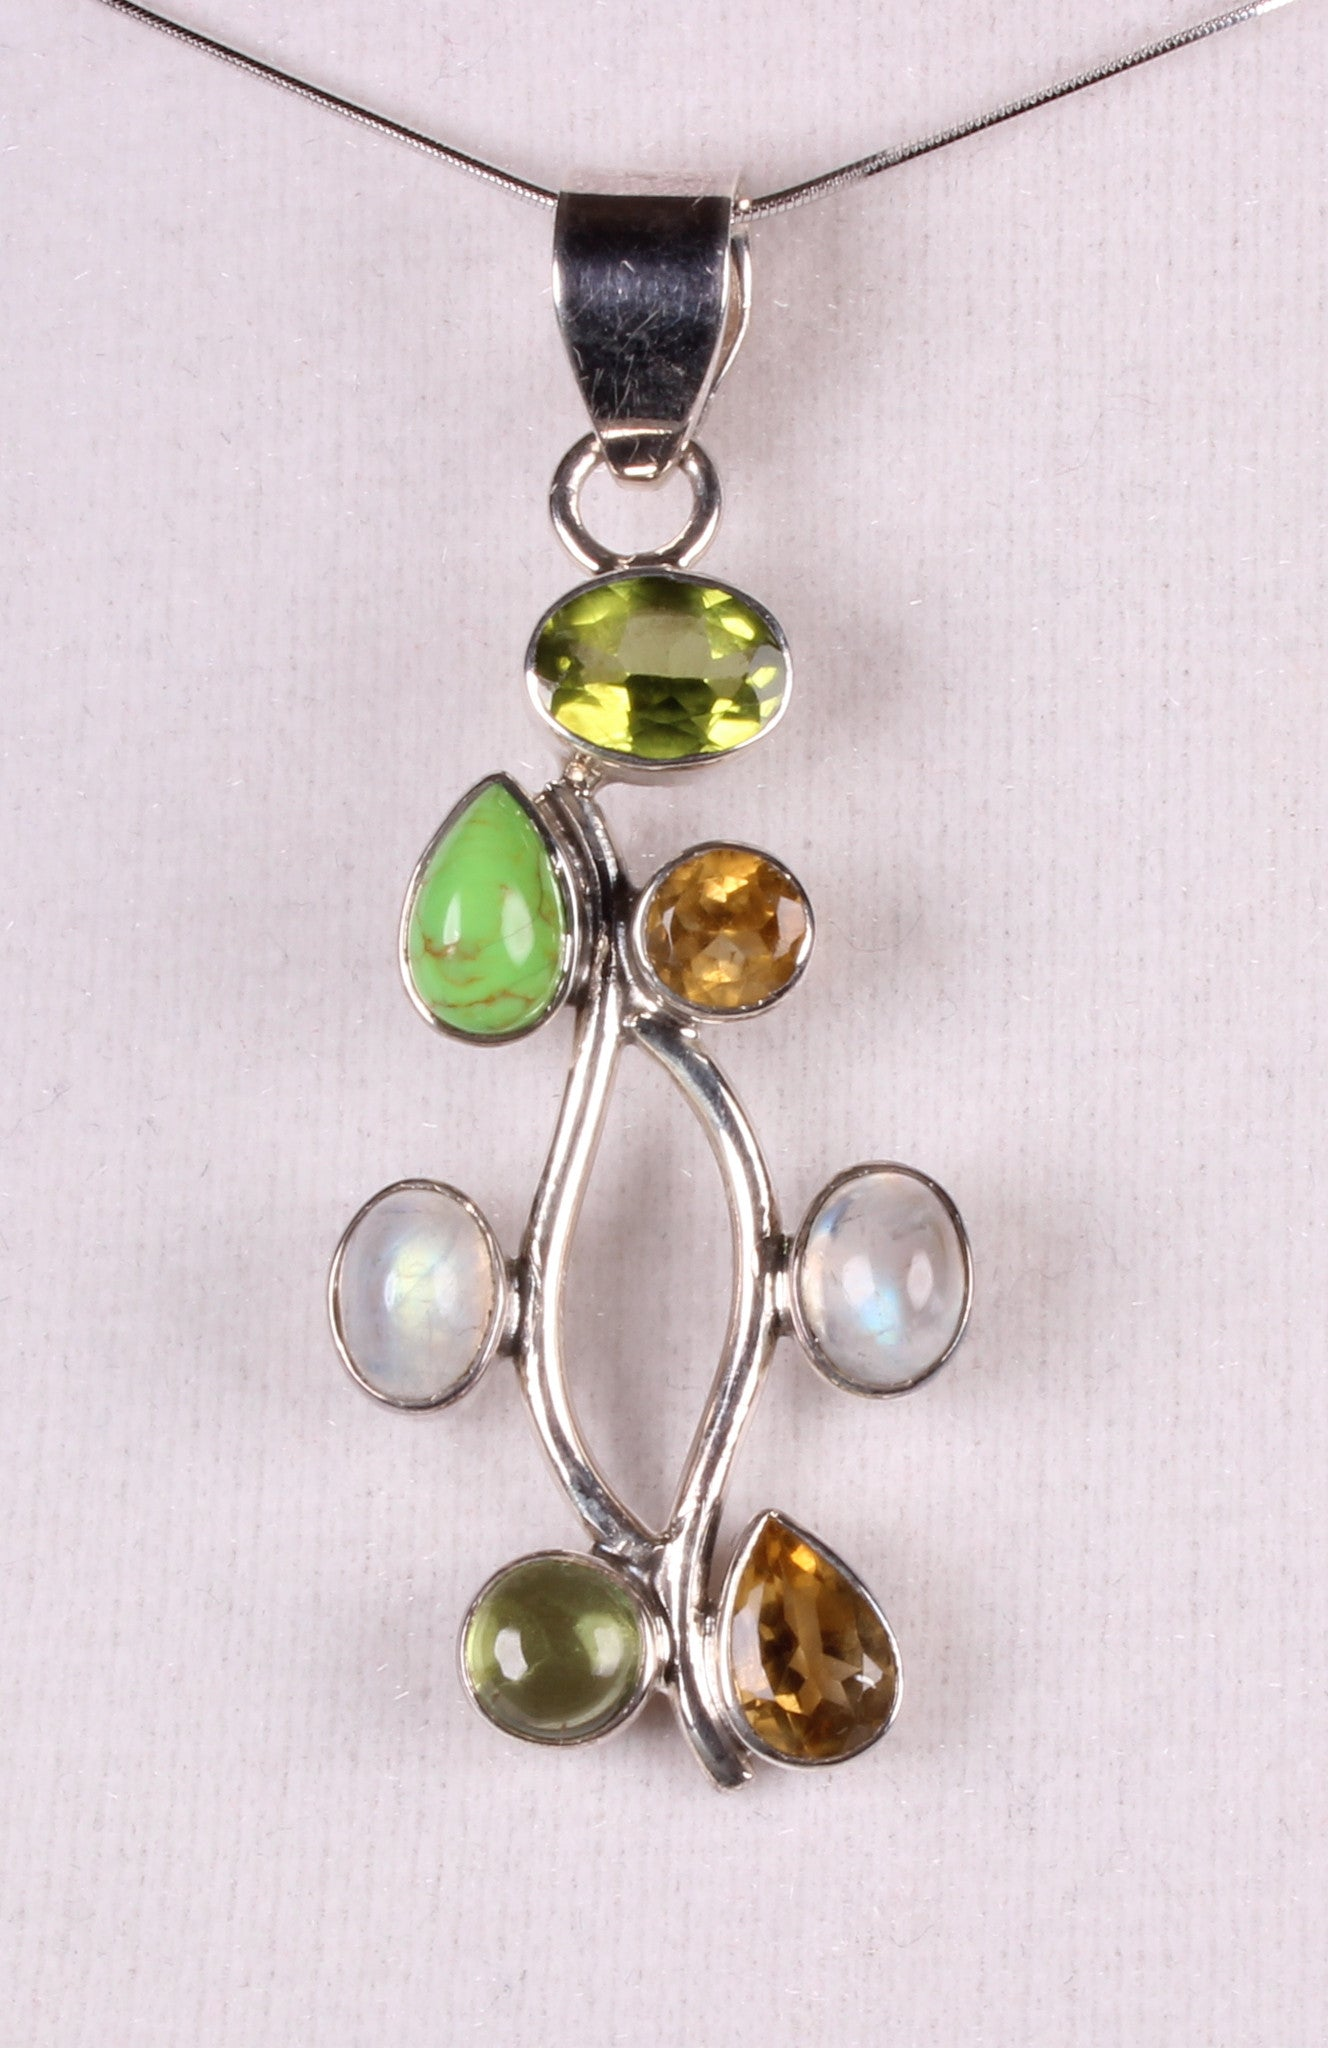 Multi-gemstone Sterling Silver Pendant